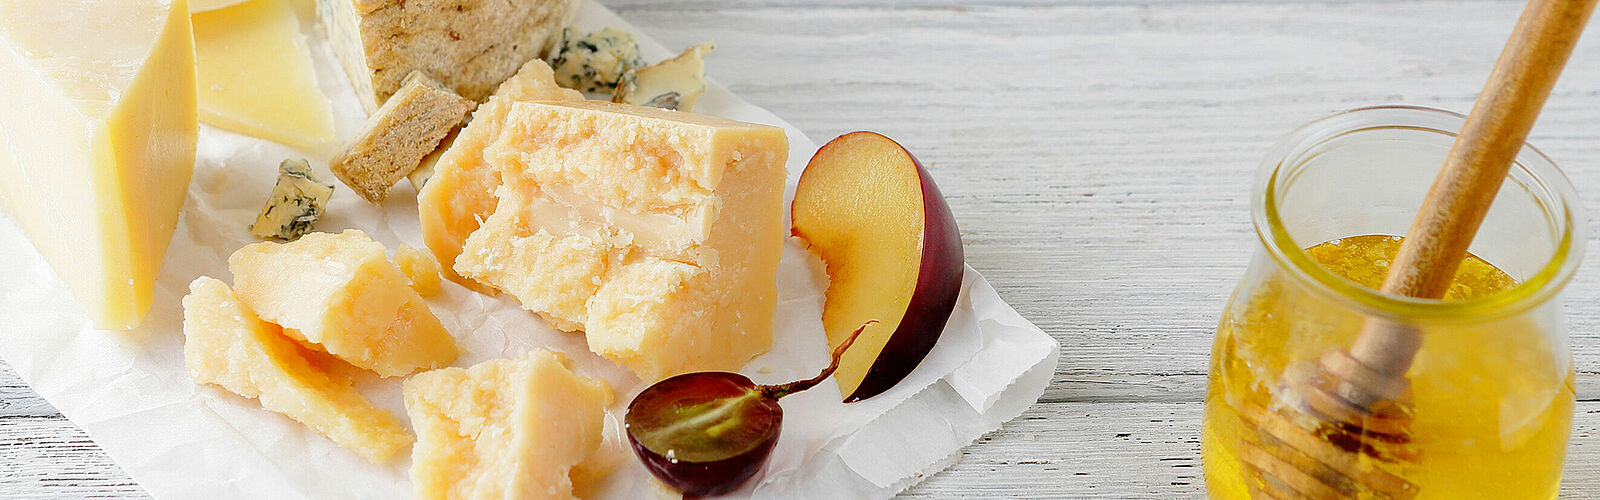 Fromage & Miel